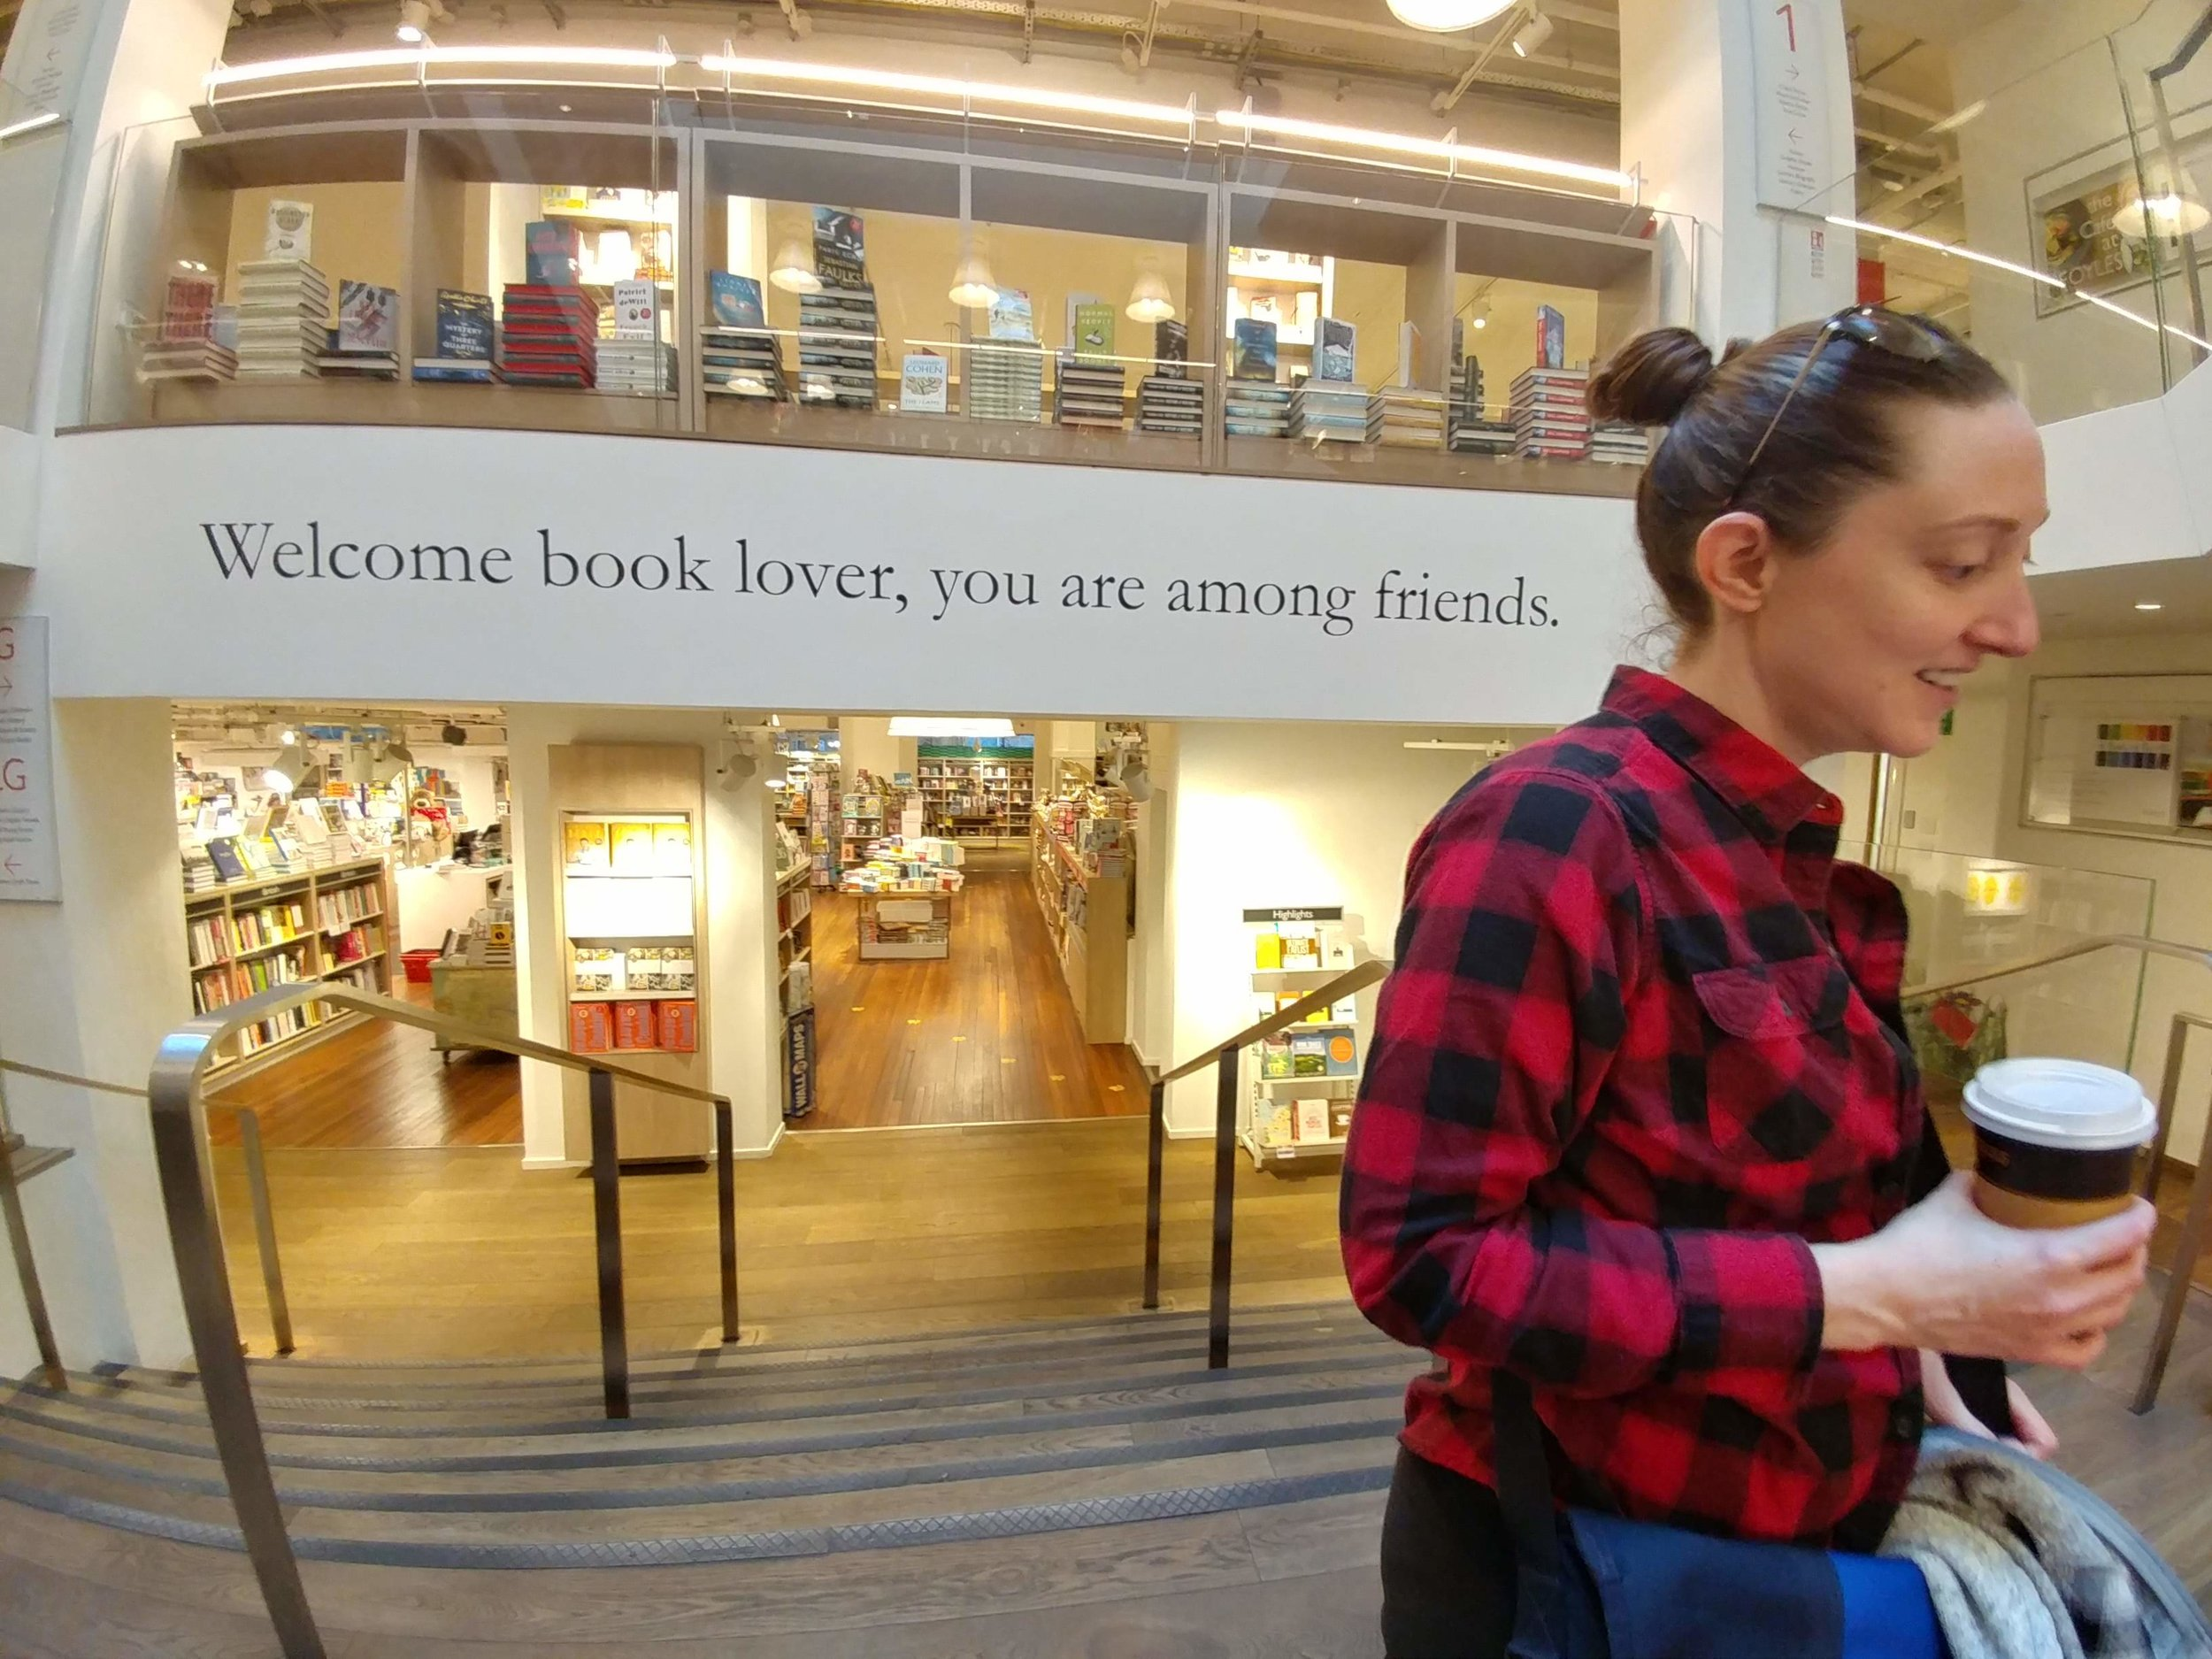 At Foyles bookshop in London. Photo by Adam, who is awesome, and in no way requested this shout-out.